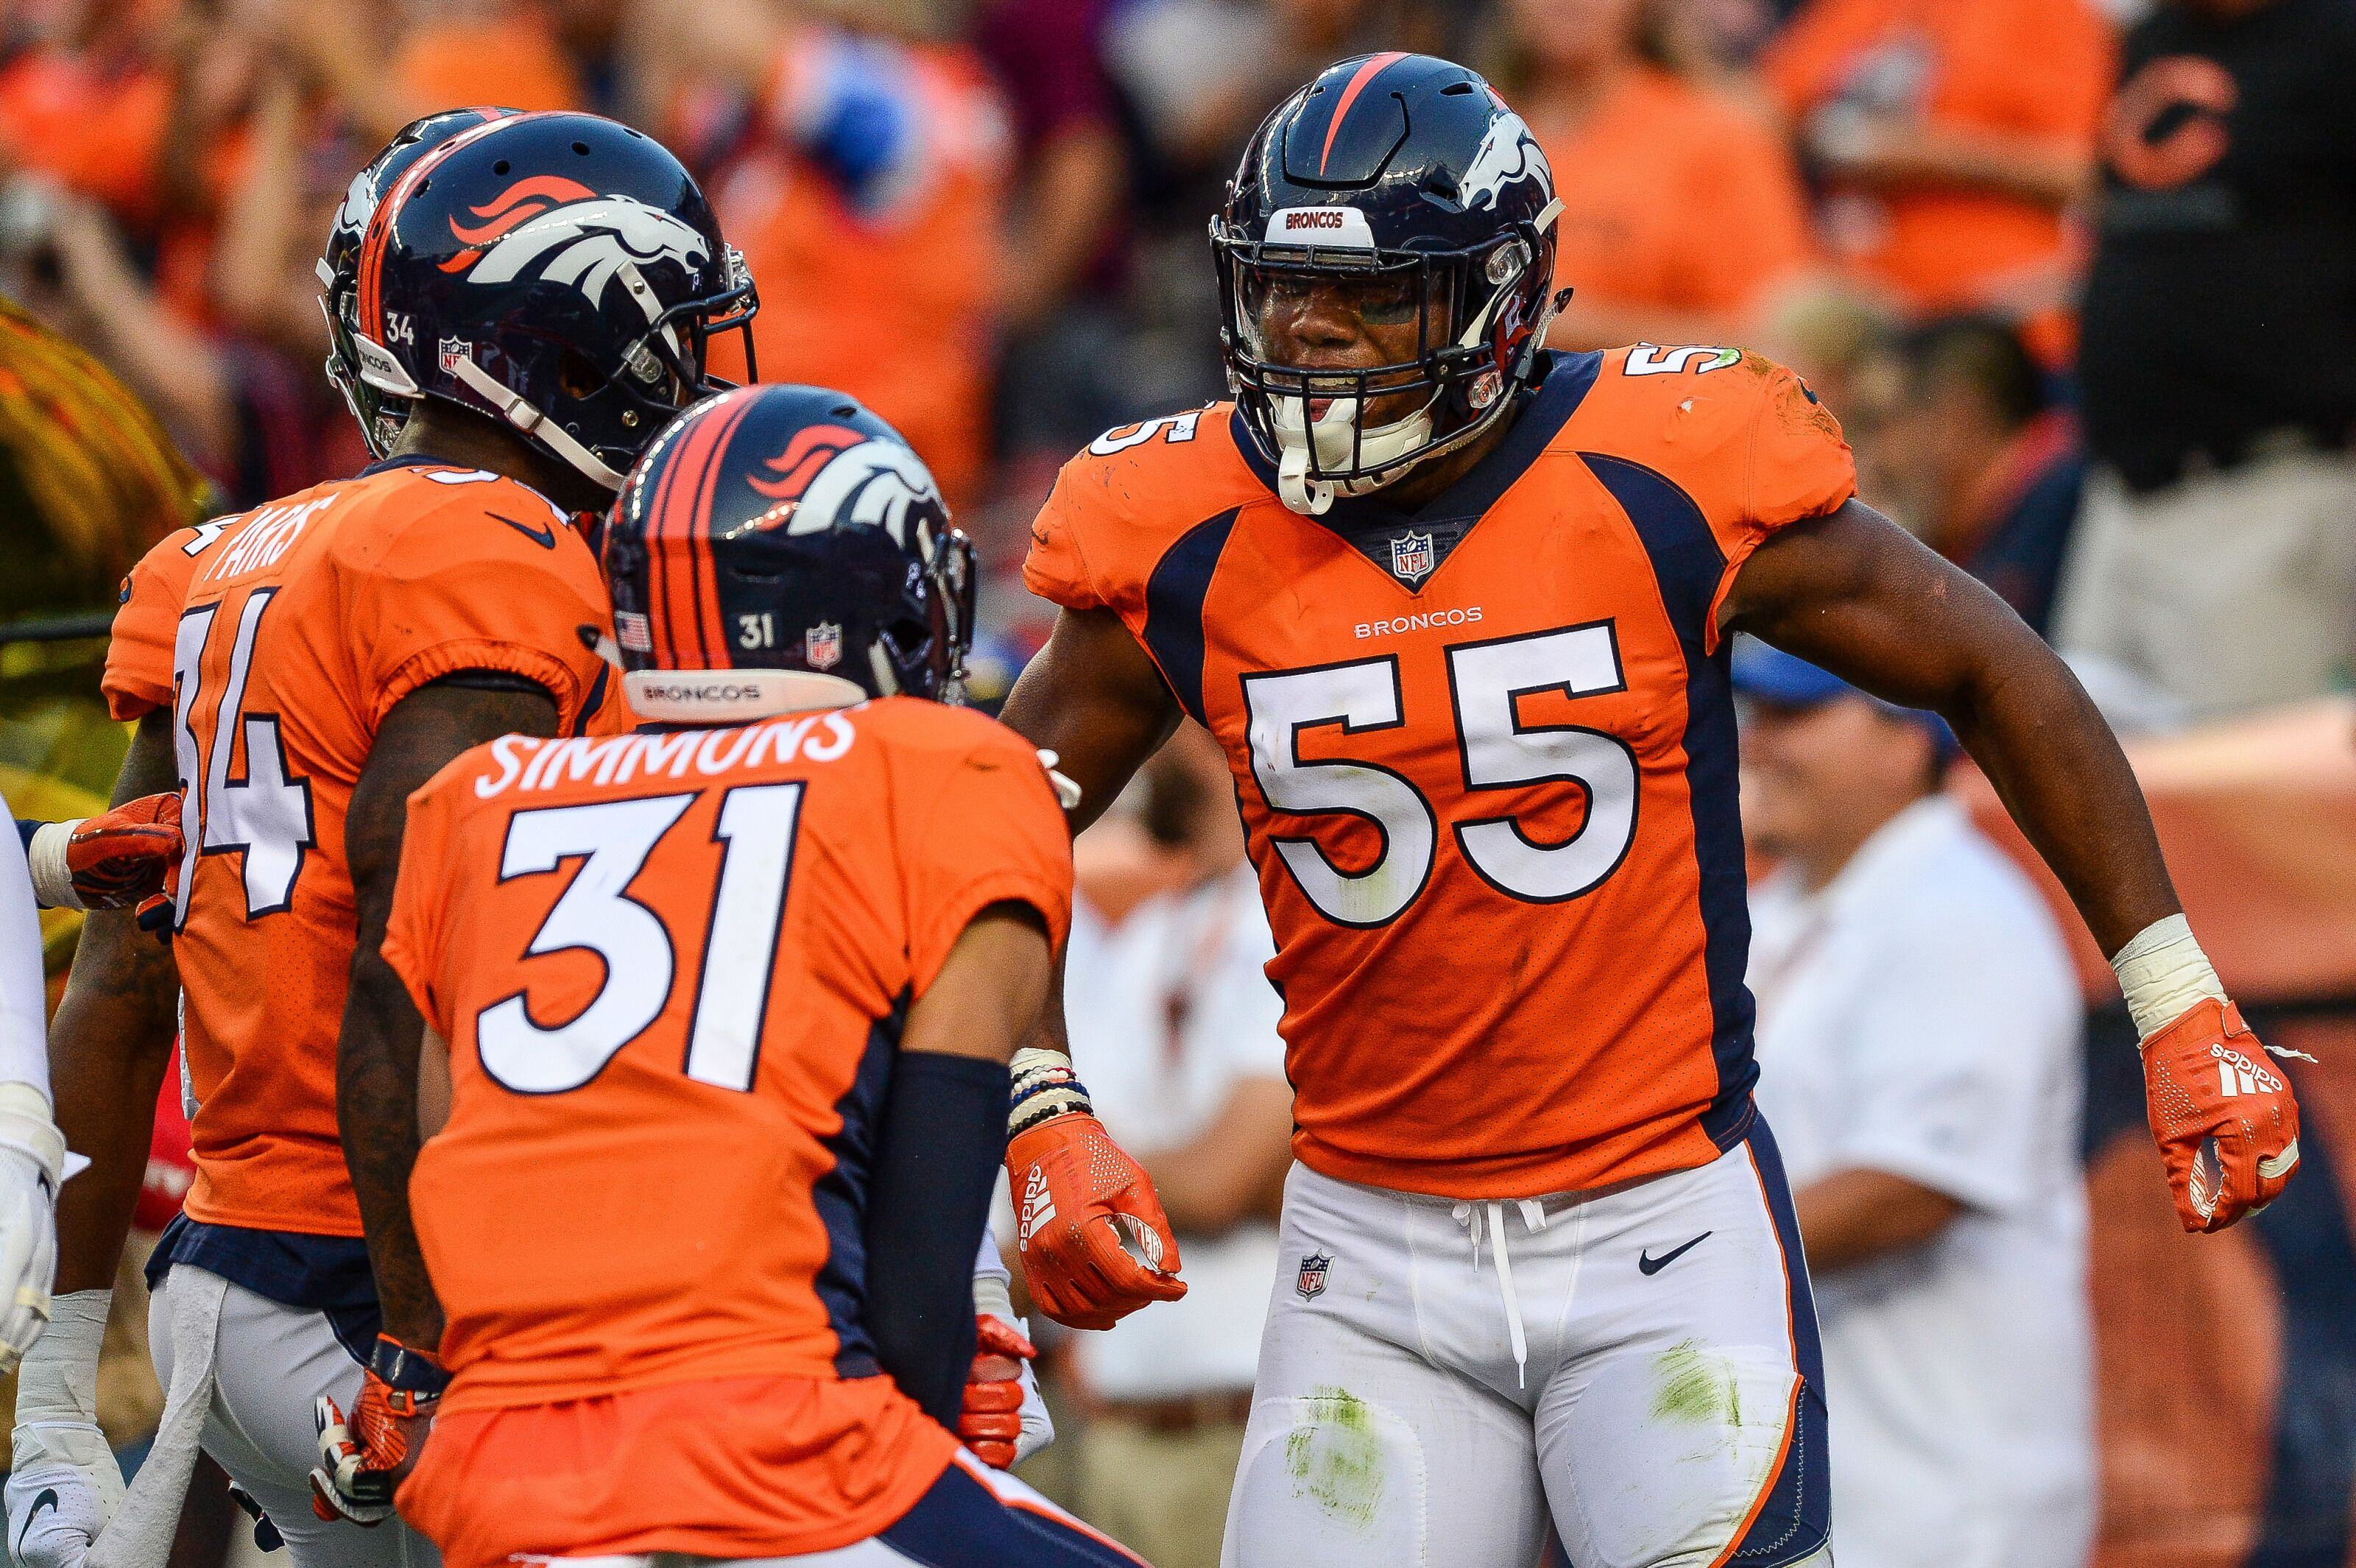 Denver Broncos: Bradley Chubb being slept on far too heavily